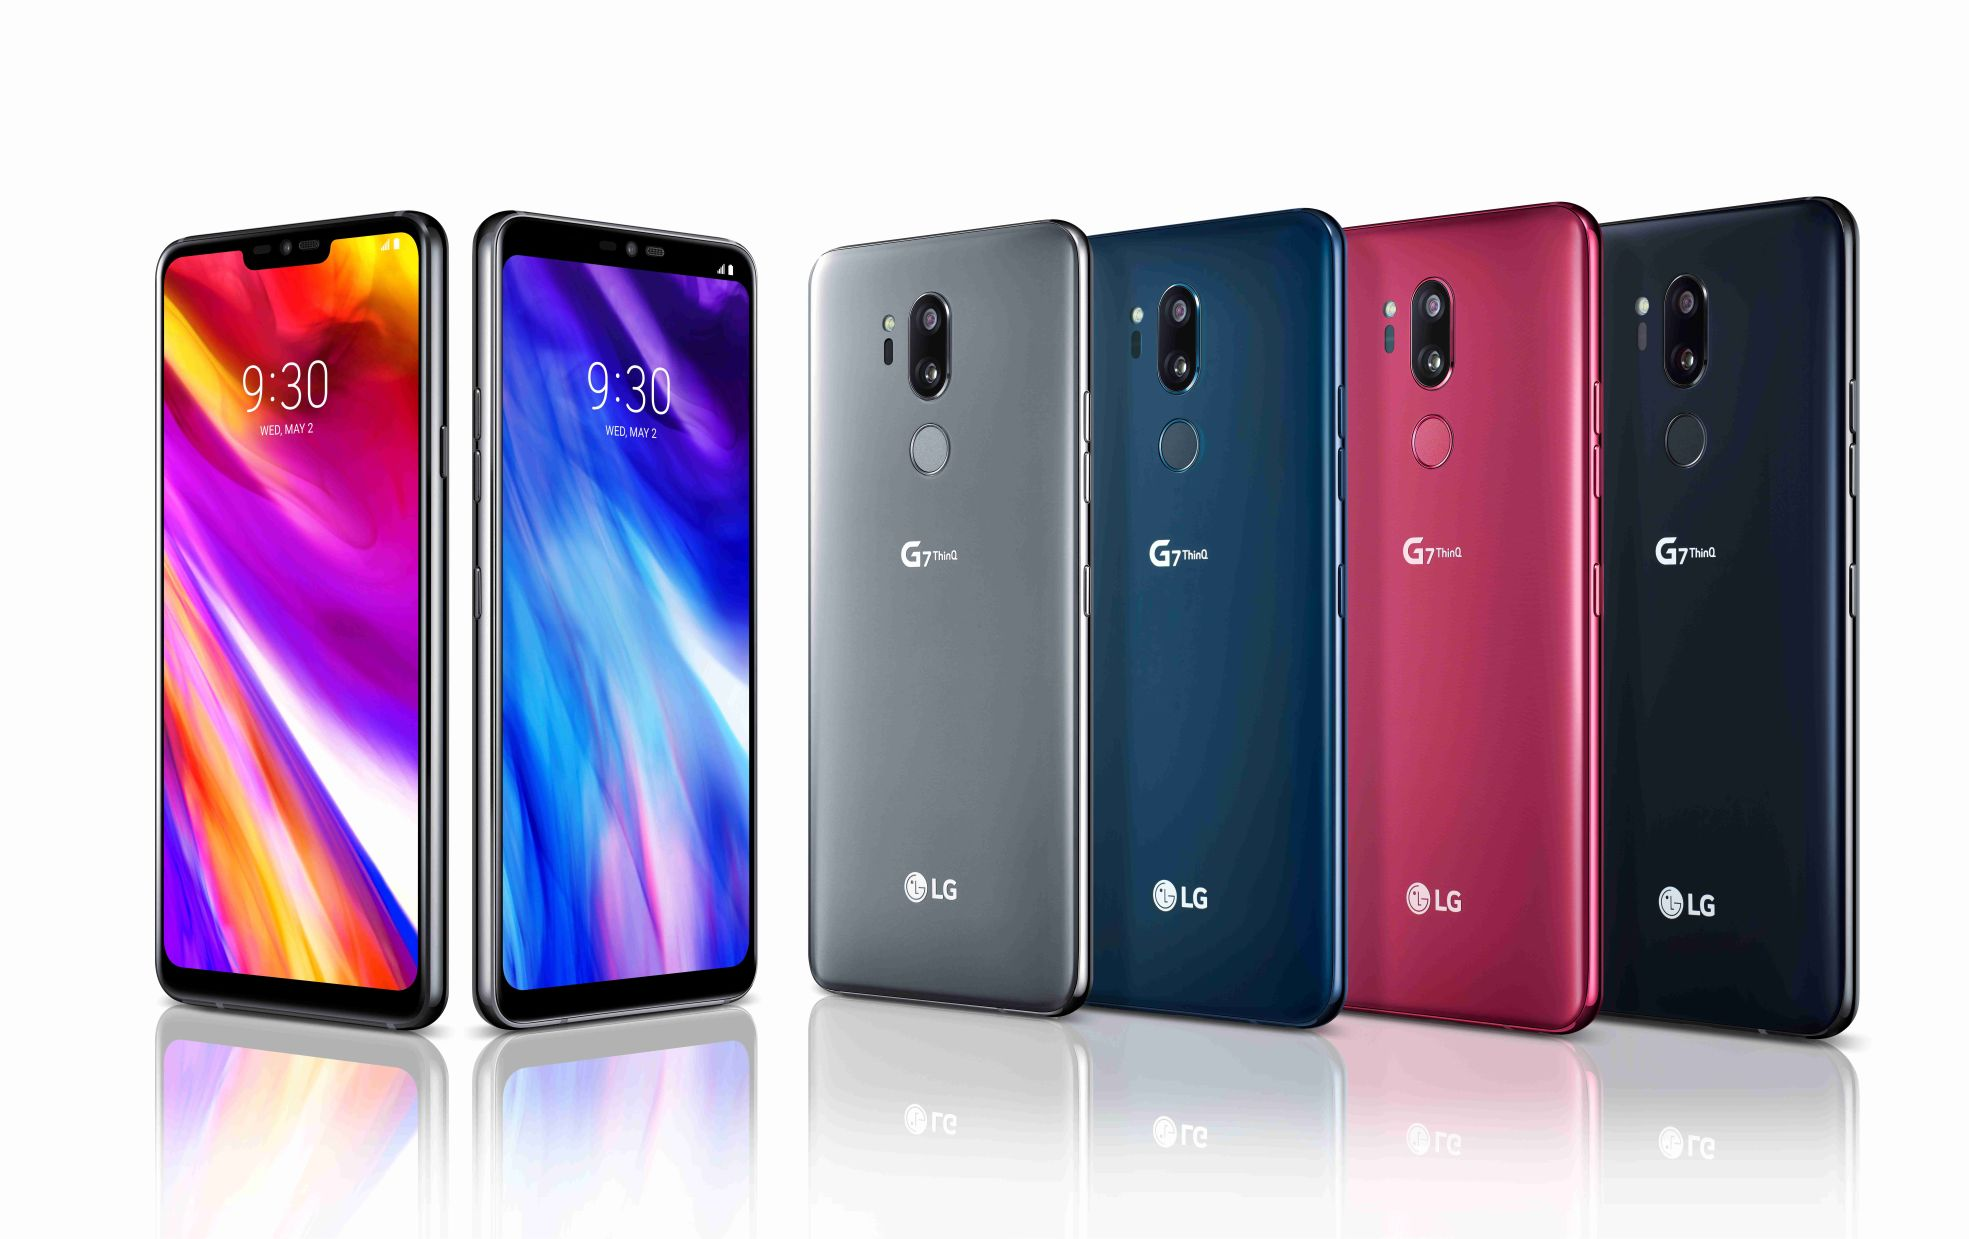 LG G7 ThinQ Launched Officially, With 6.1 inch Notch Screen, Dual Camera With AI, S845 CPU